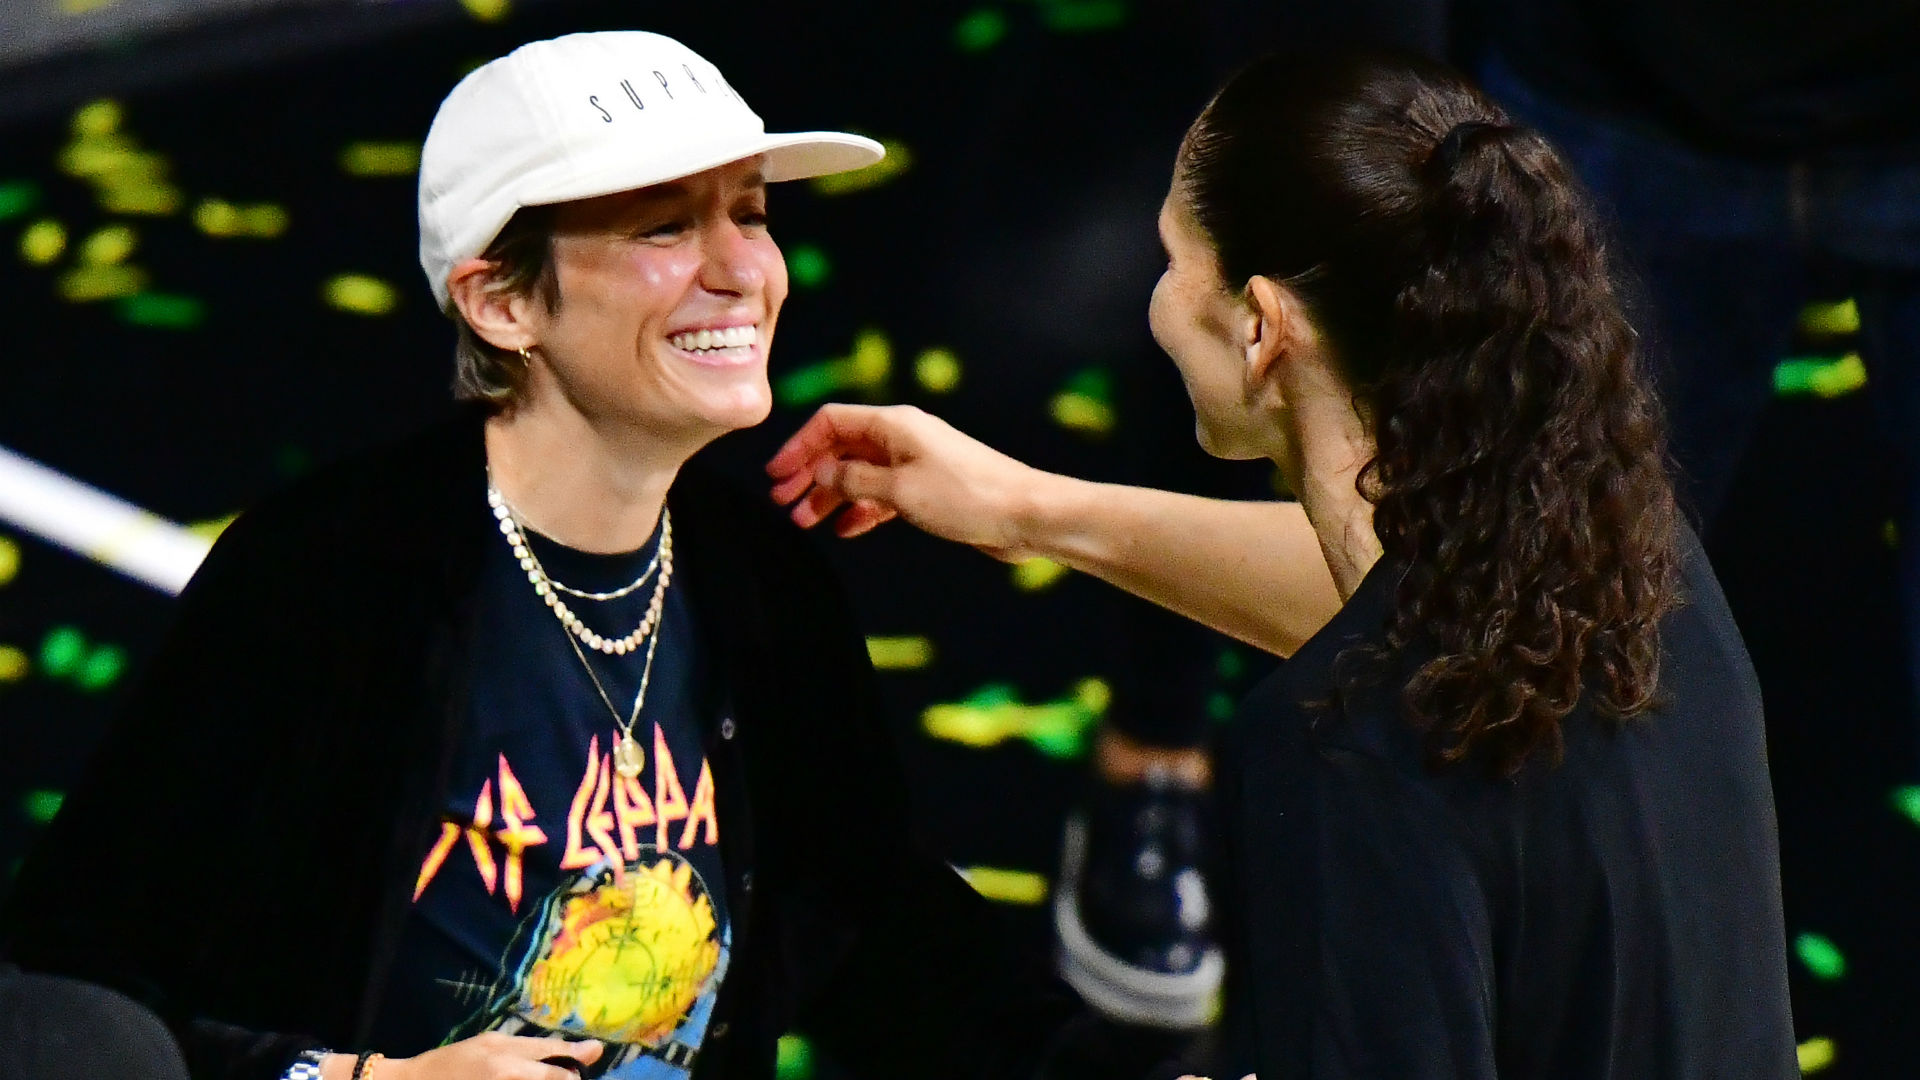 Sue Bird posts captionless proposal photo with Megan Rapinoe on Instagram and fans are freaking out